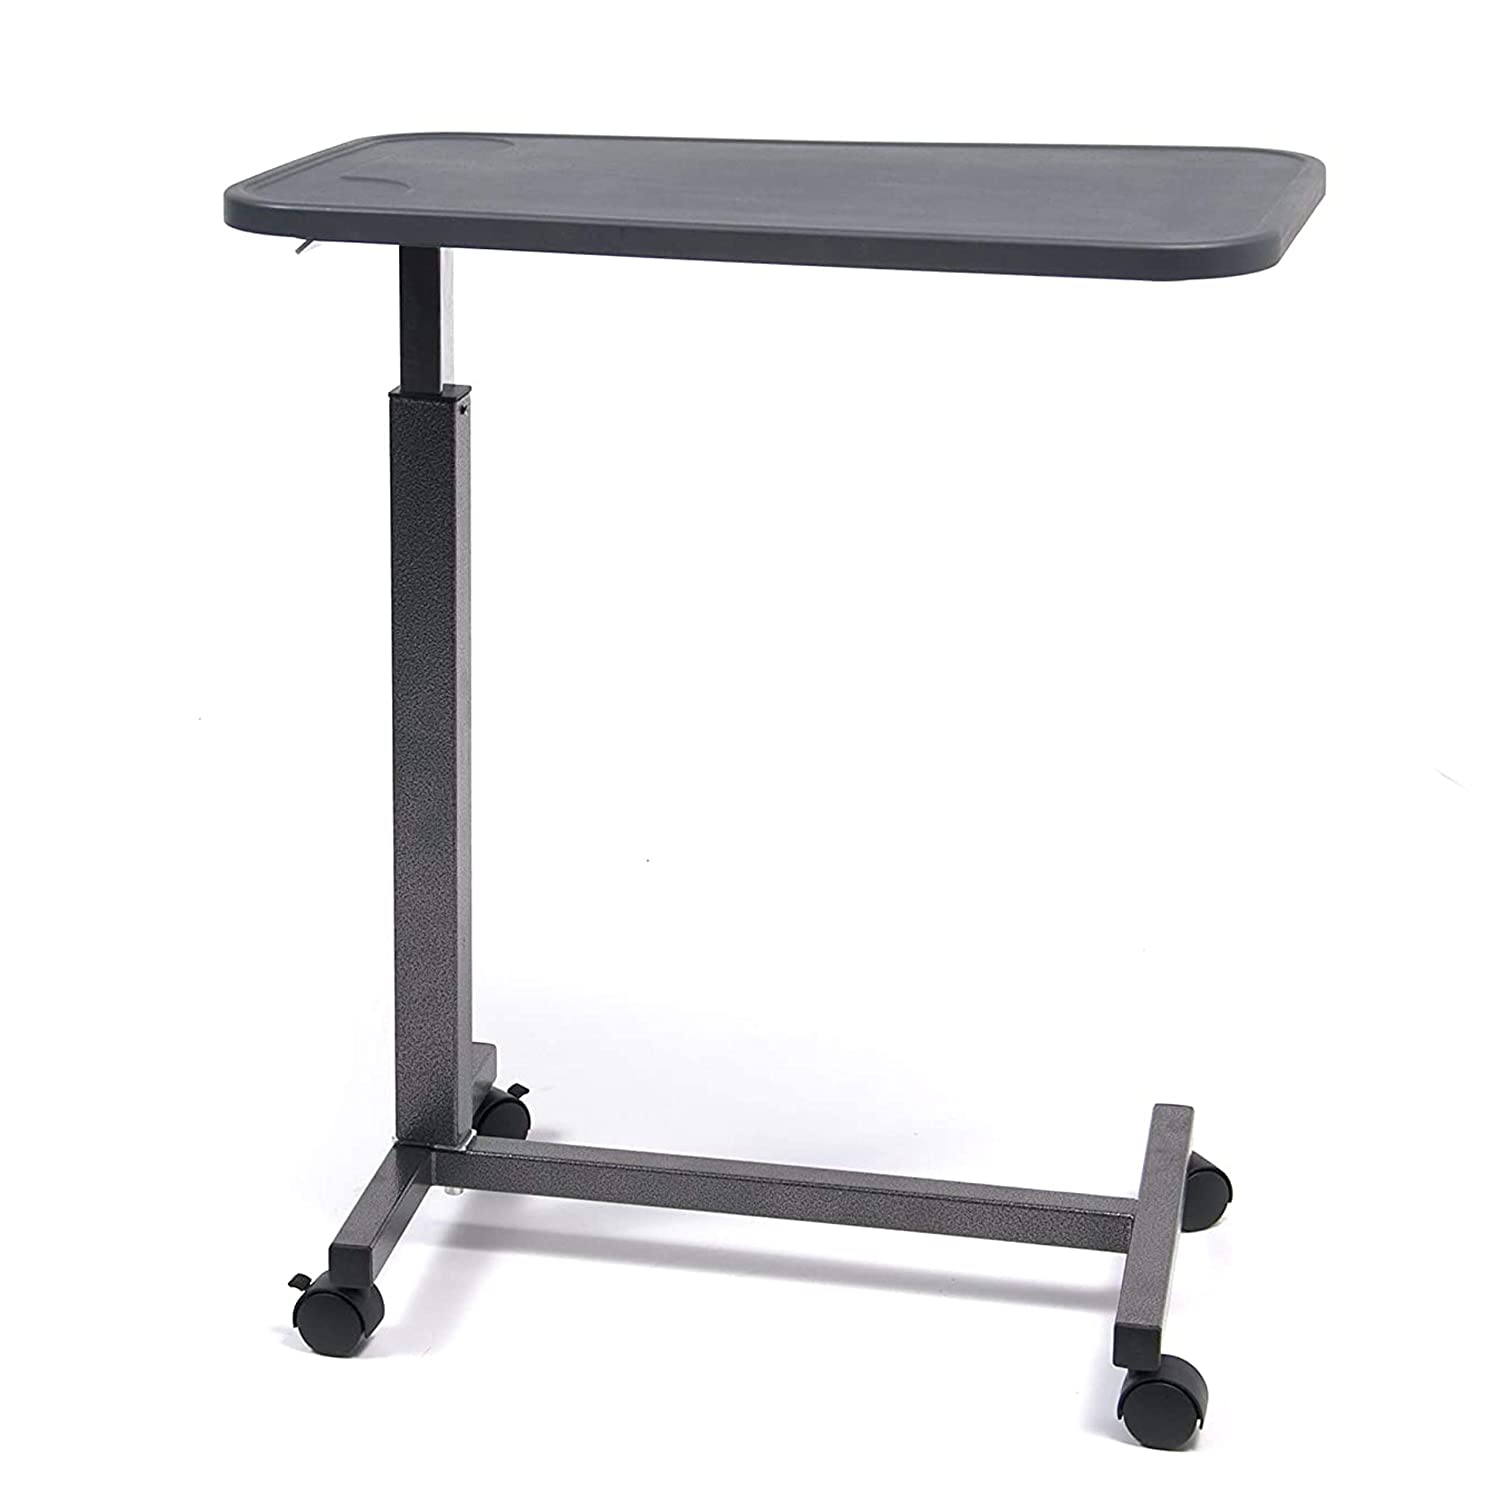 Graham-Field - GF8903PS Lumex Over Bed Table with Non Tilt-Composite Top-Silver Vein Finish, 23 Pound, 35x80